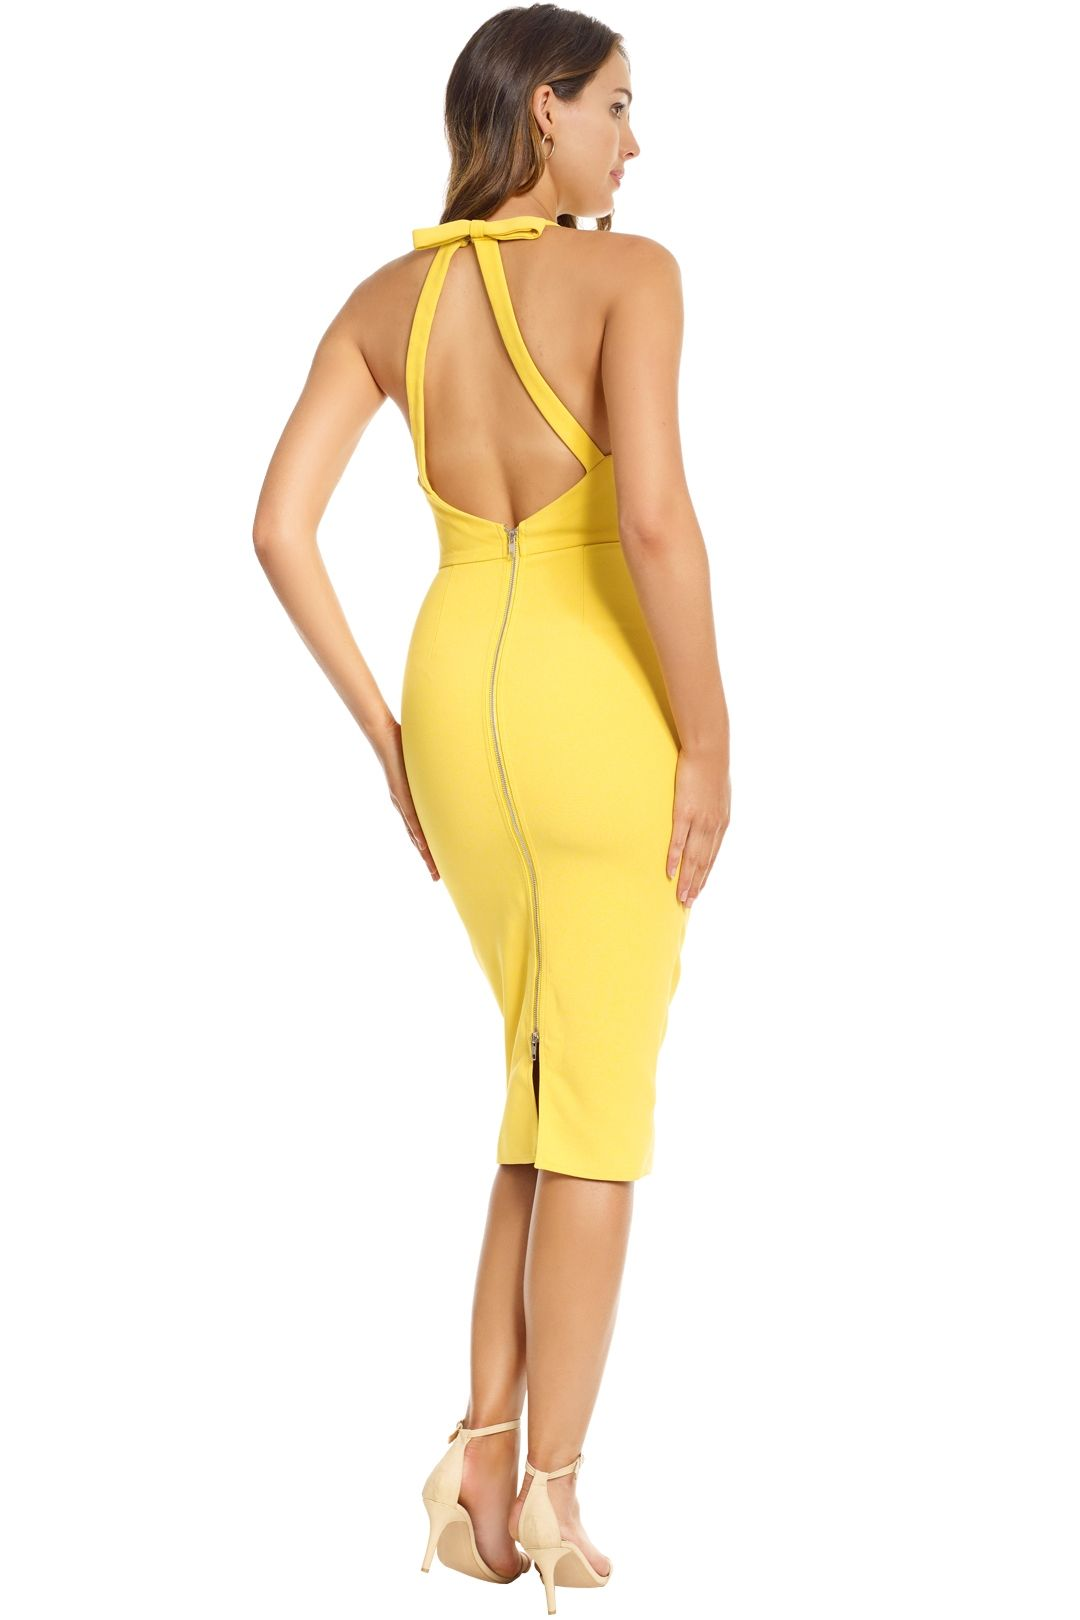 Alex Perry - Aileen Open Back Lady Dress - Yellow - Back